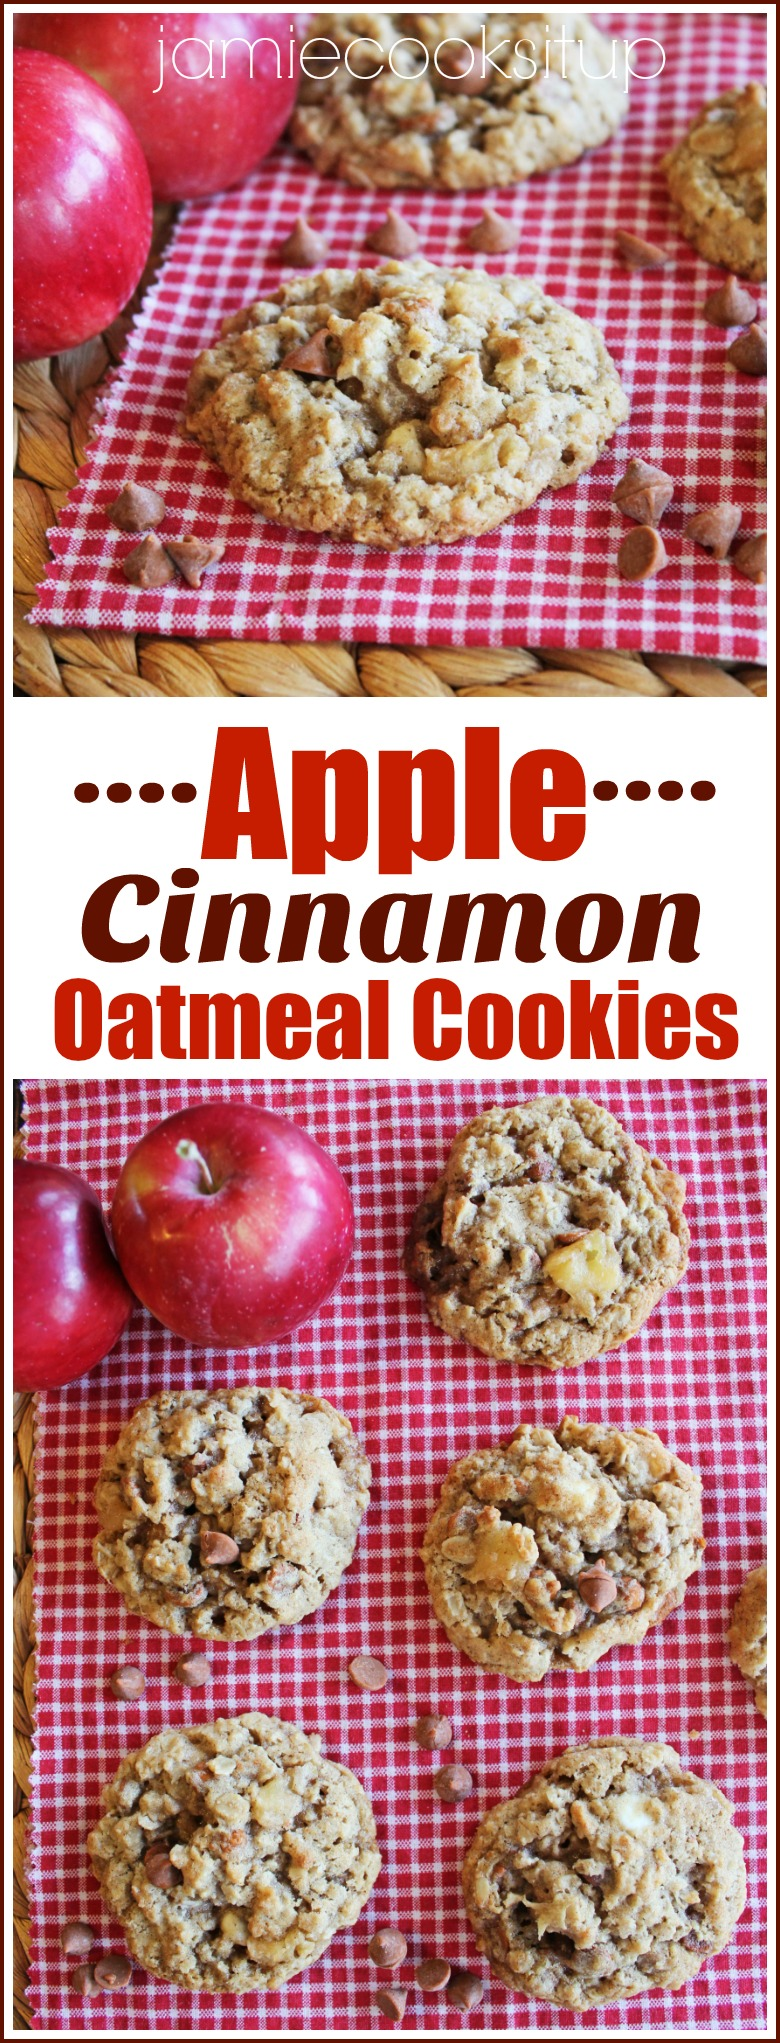 apple-cinnamon-oatmeal-cookies-from-jamie-cooks-it-up